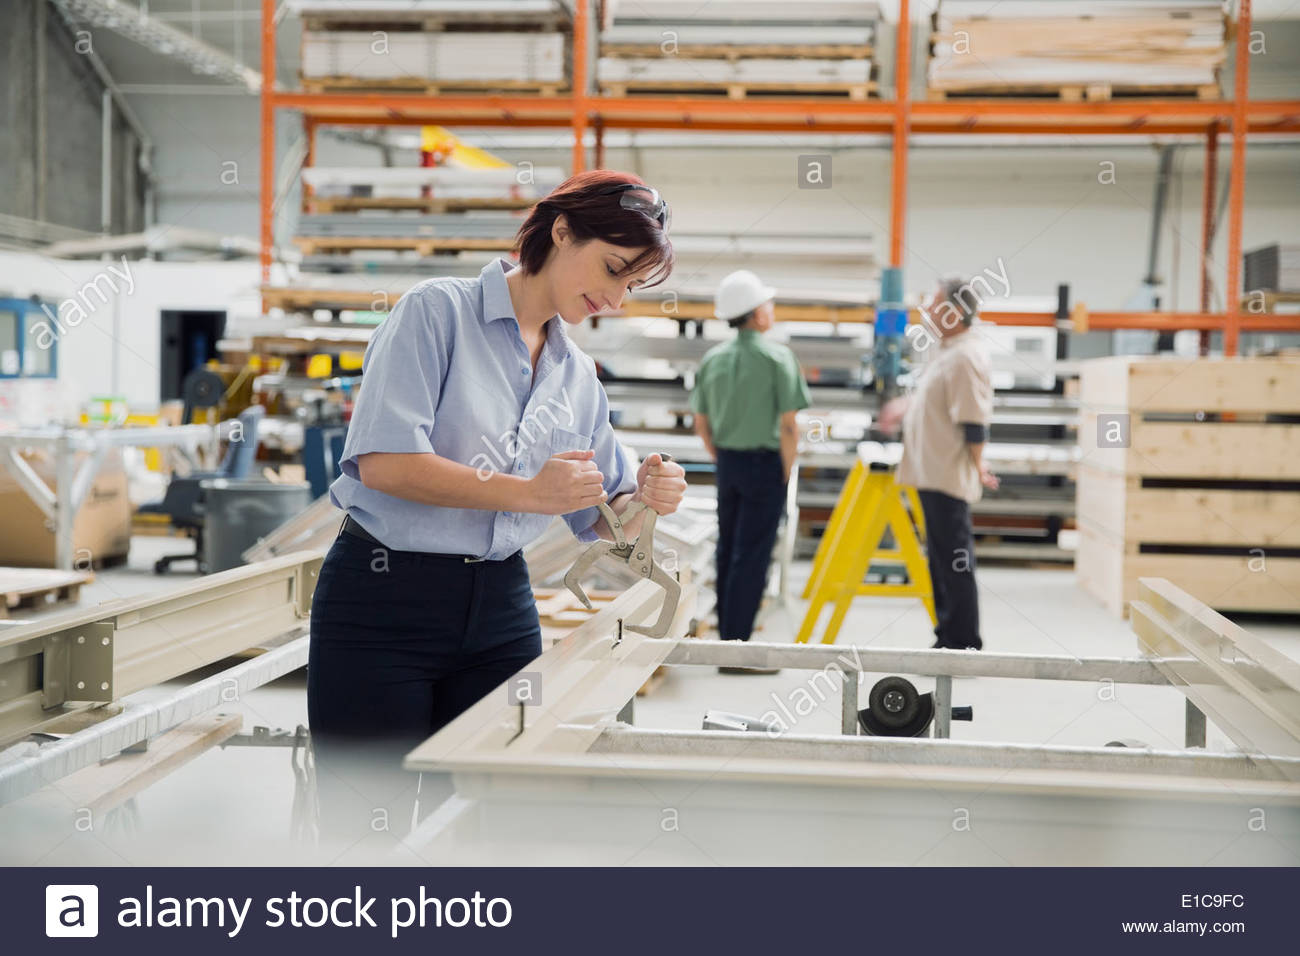 Worker using vise grip tool in manufacturing plant - Stock Image